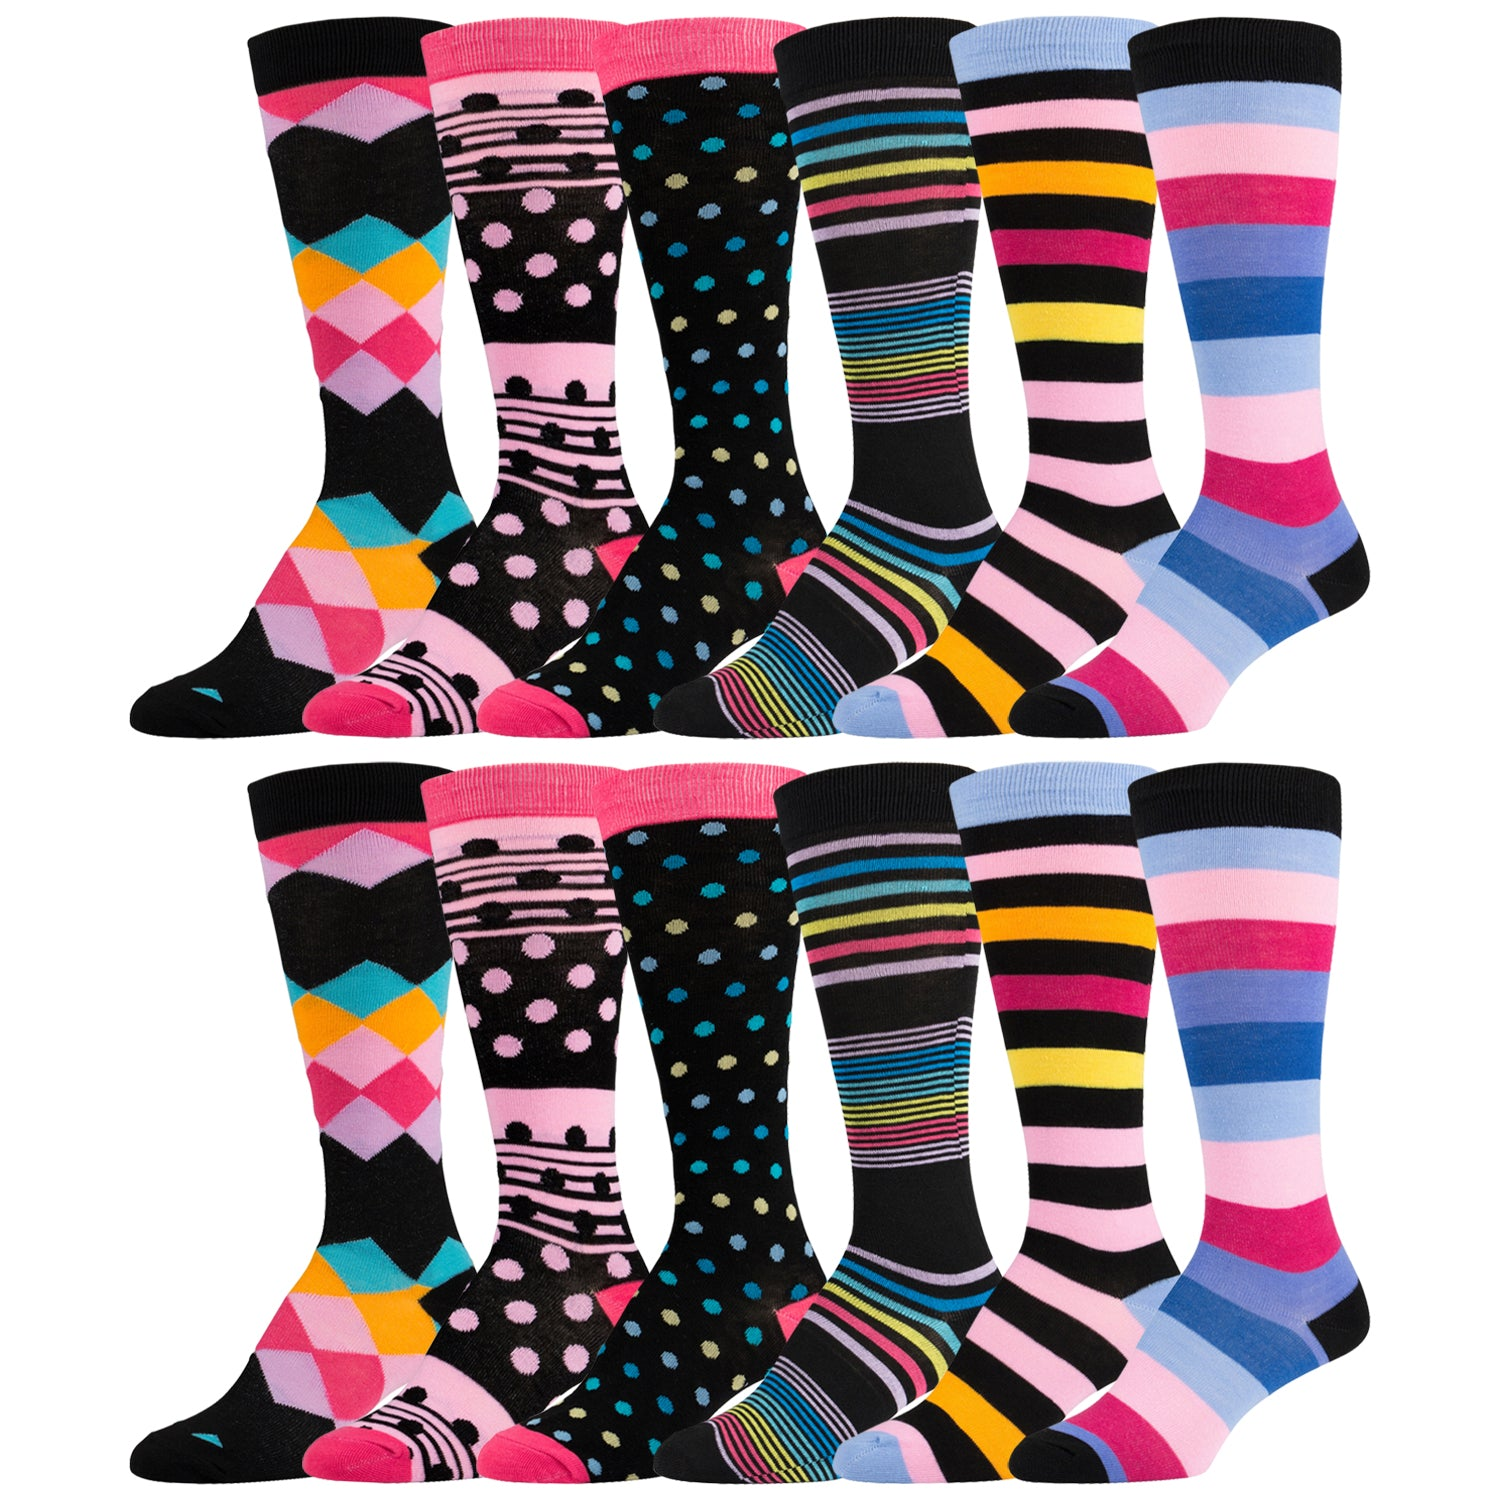 12 Pairs of Fancy Designed Colorful Knee High Socks Striped and Dotted